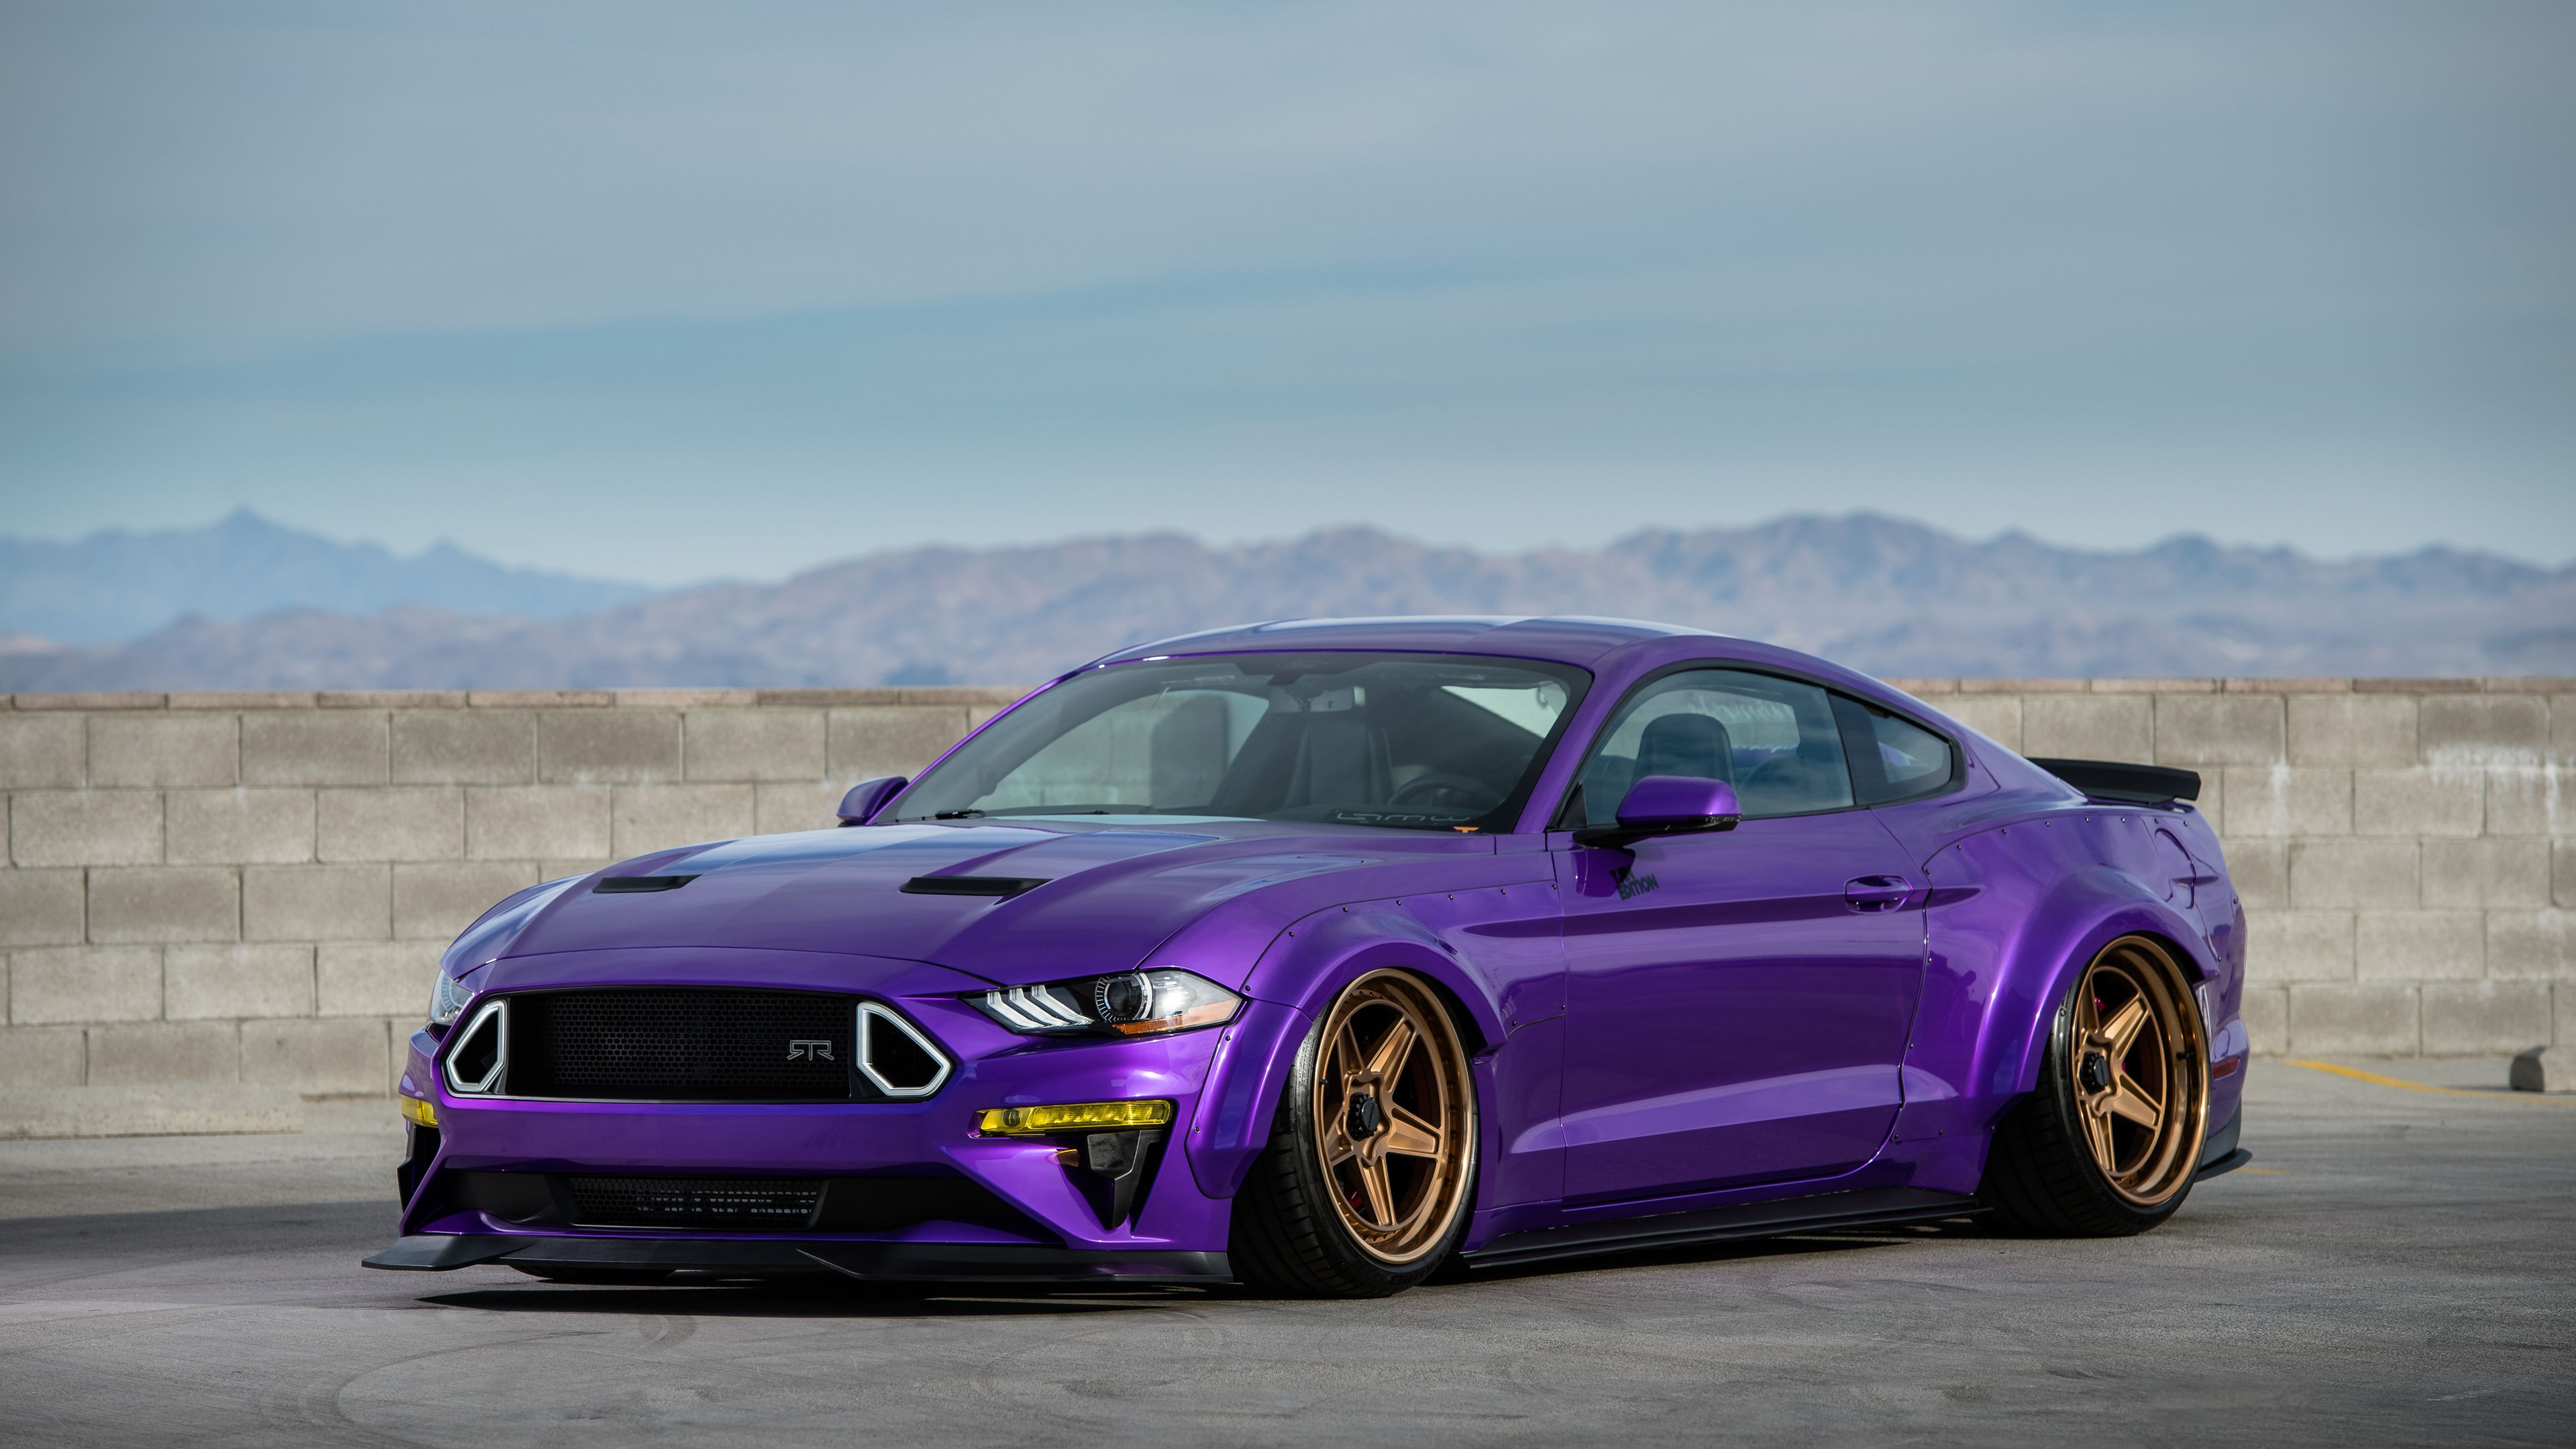 Tjin edition ford mustang ecoboost 4k wallpaper mustang wallpapers hd wallpapers ford wallpapers ford mustang wallpapers 4k wallpapers 2018 cars